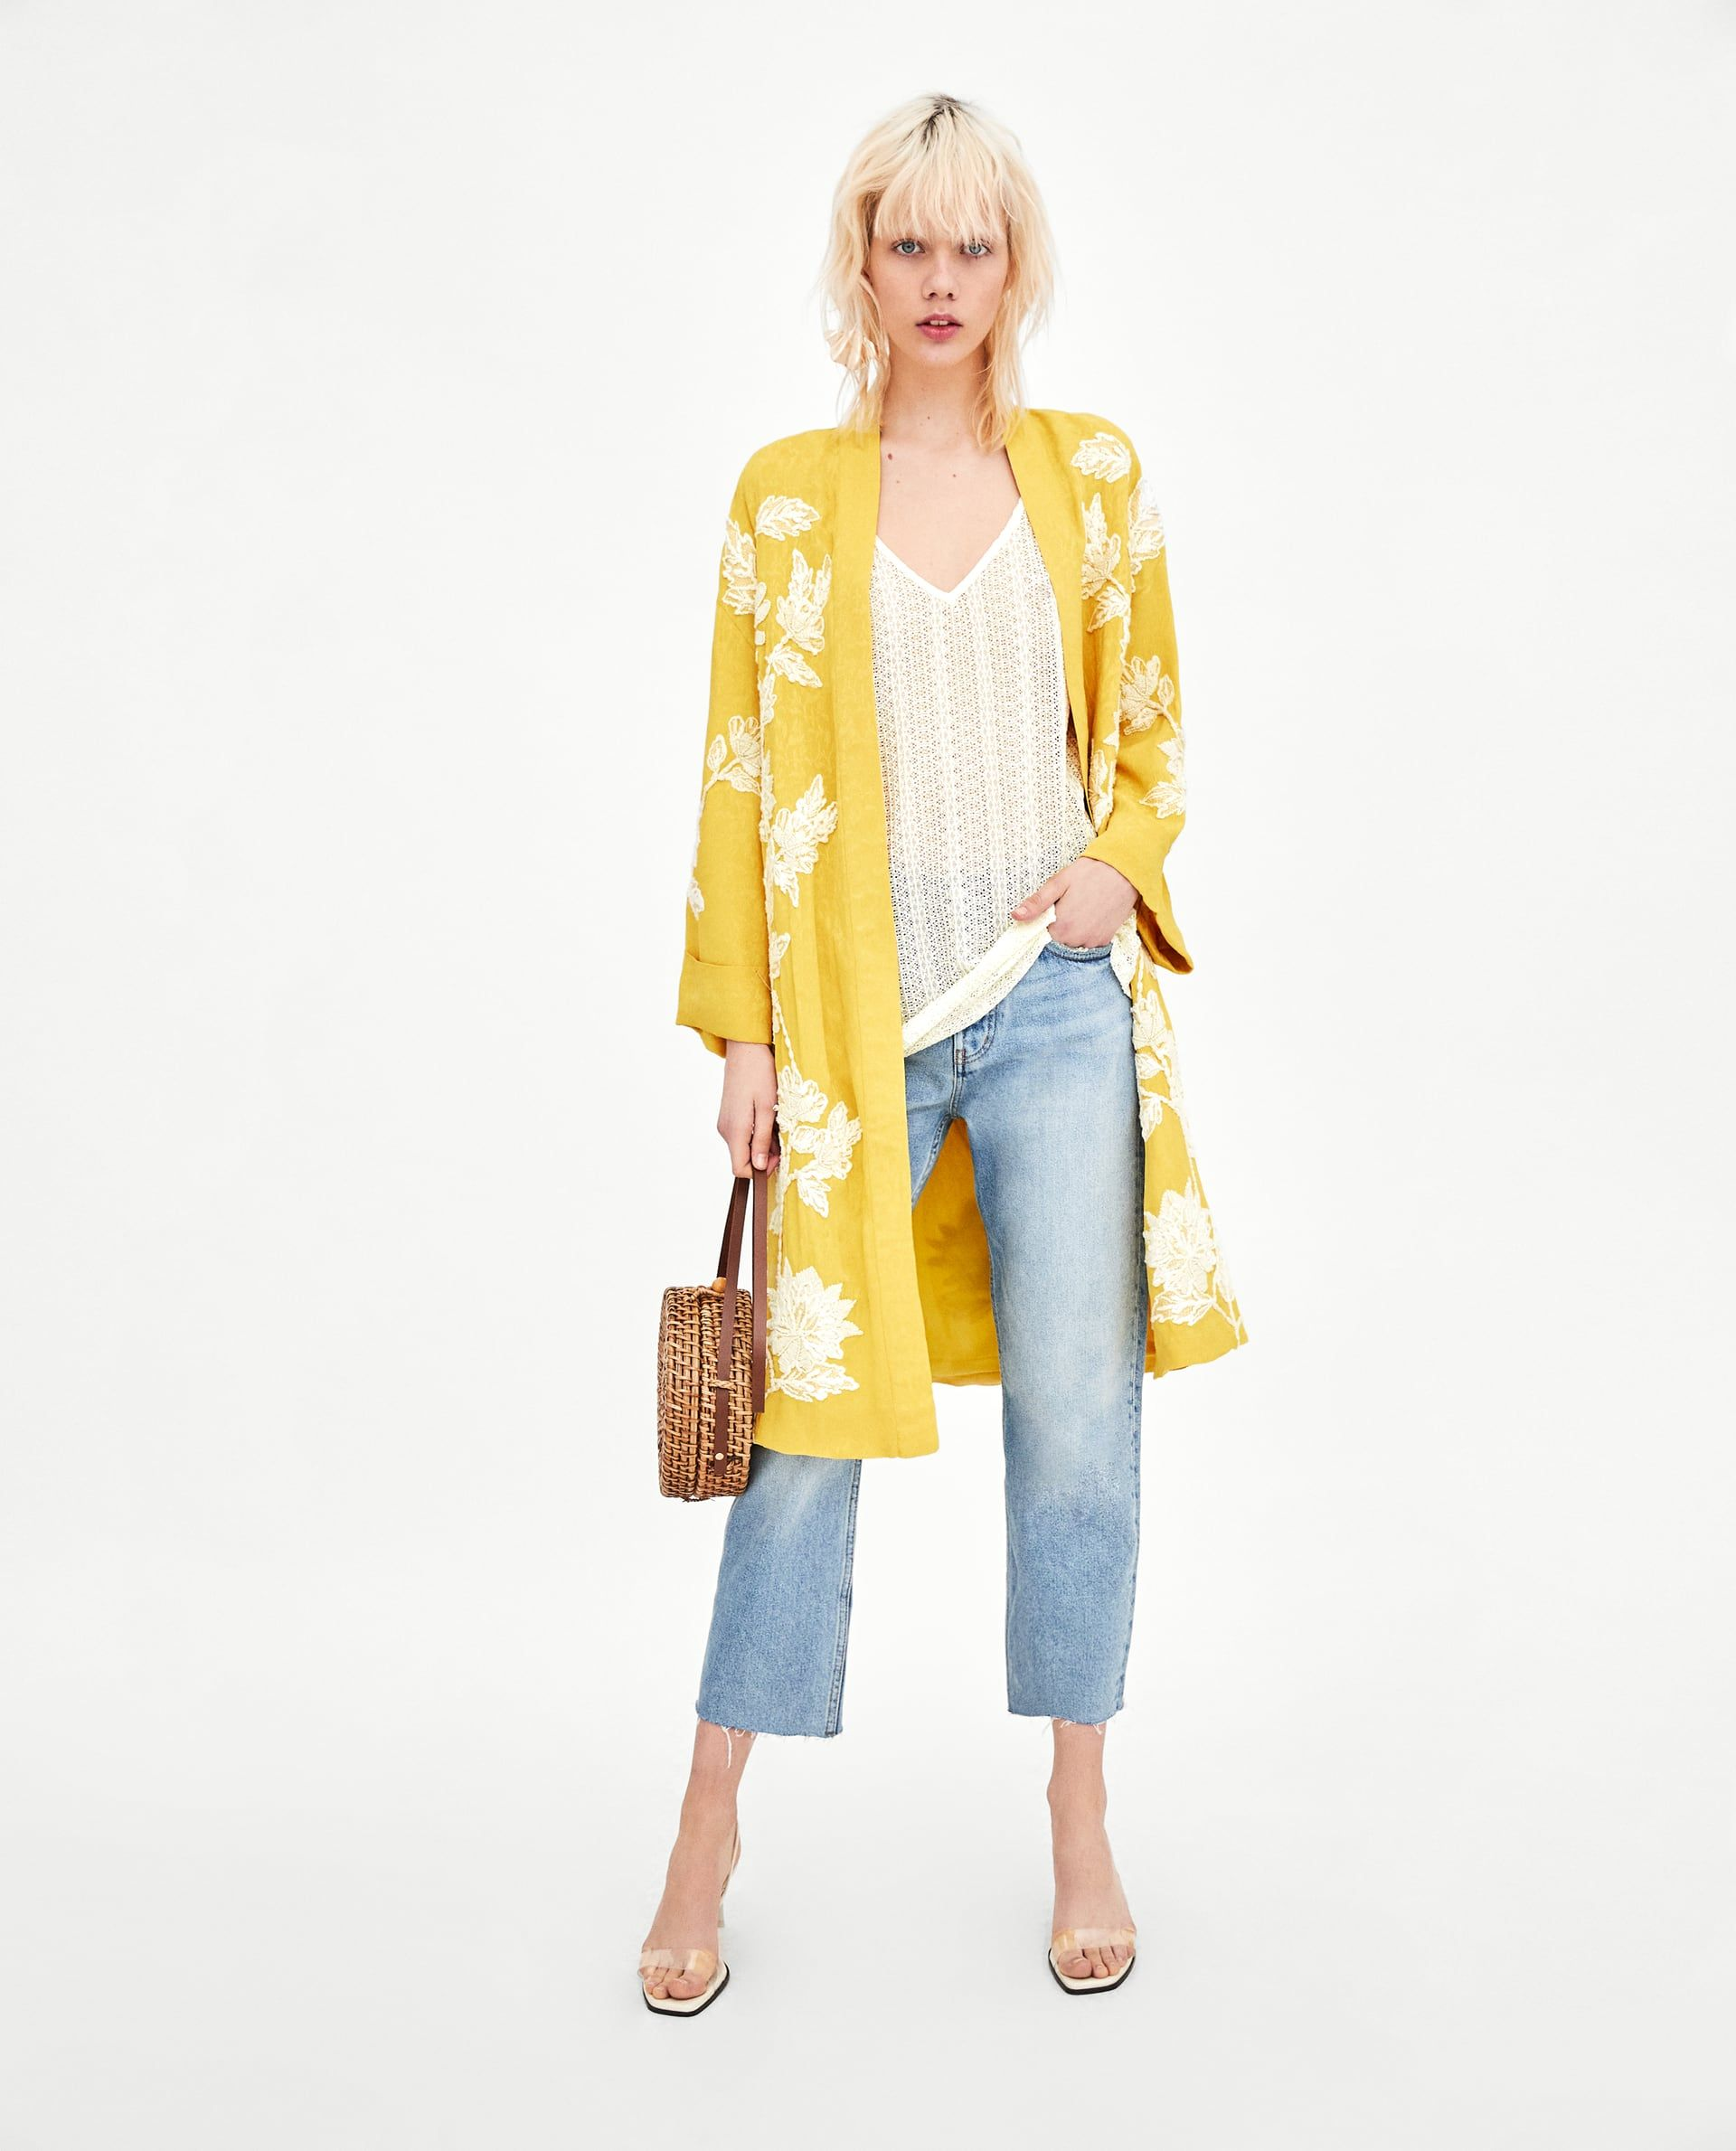 4d435ea496 We love a touch of yellow for Spring/Summer and this Zara Kimono is  perfect:) #welove #summer #fashion